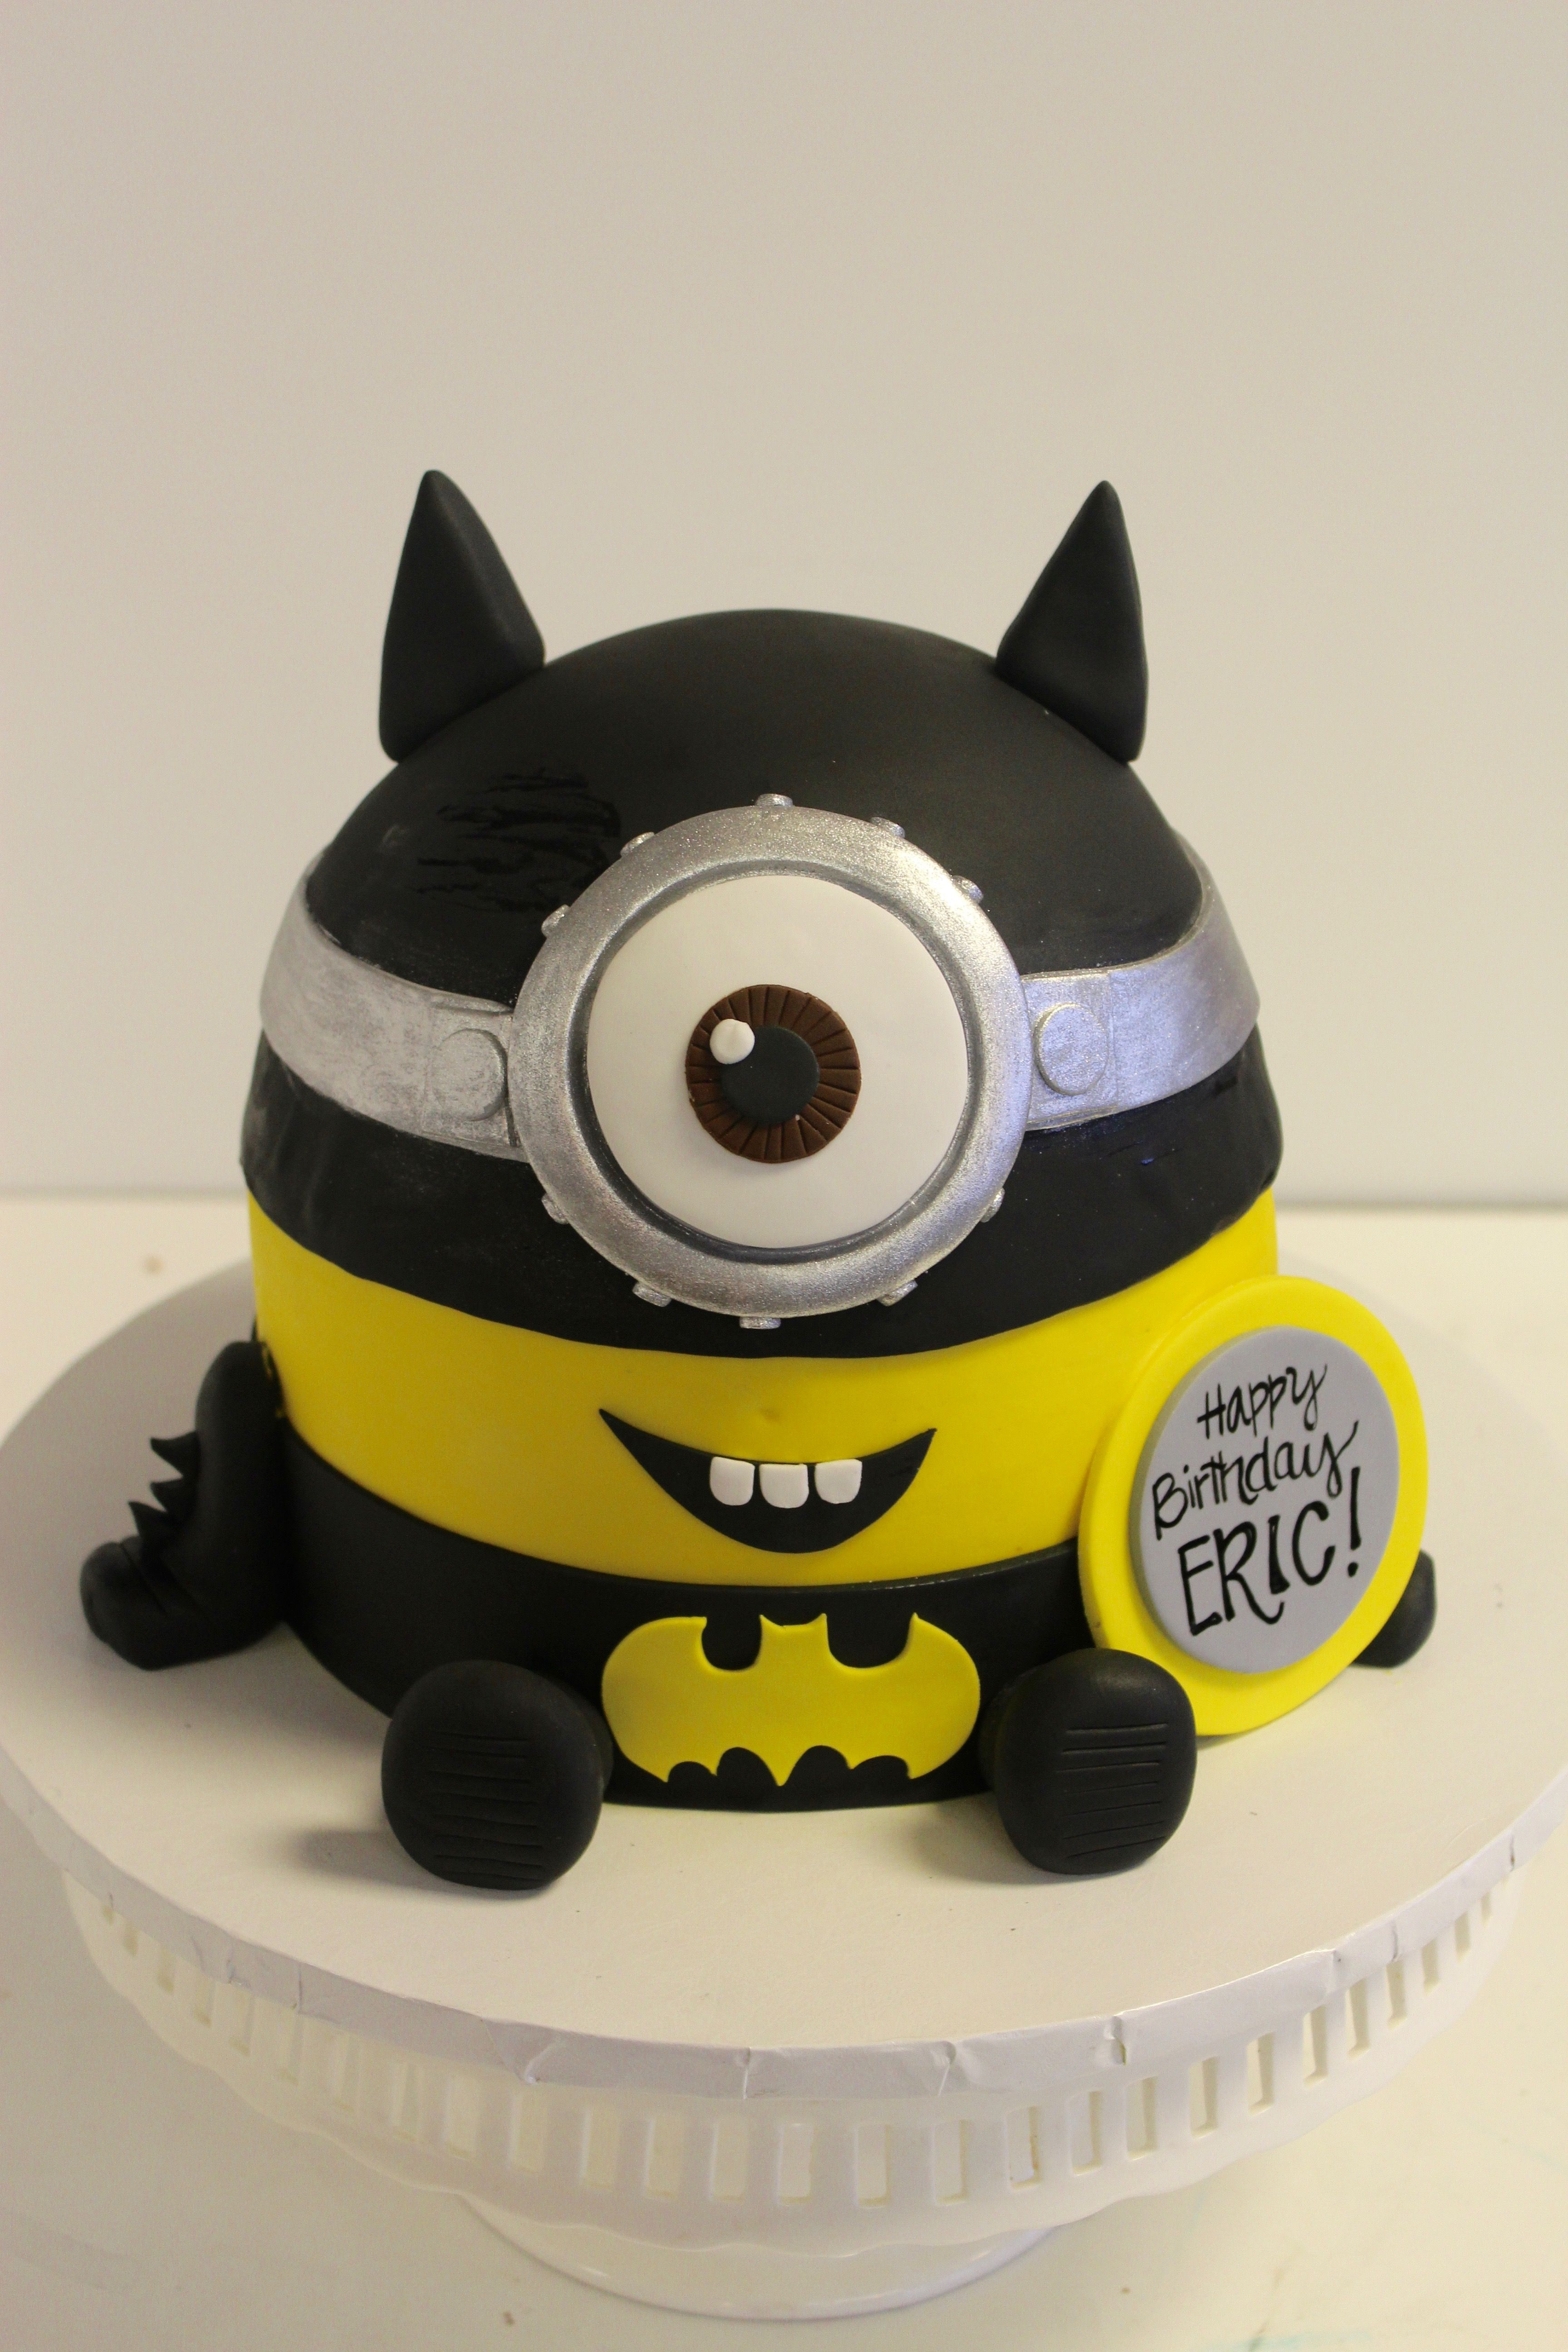 Batman Minion cake!